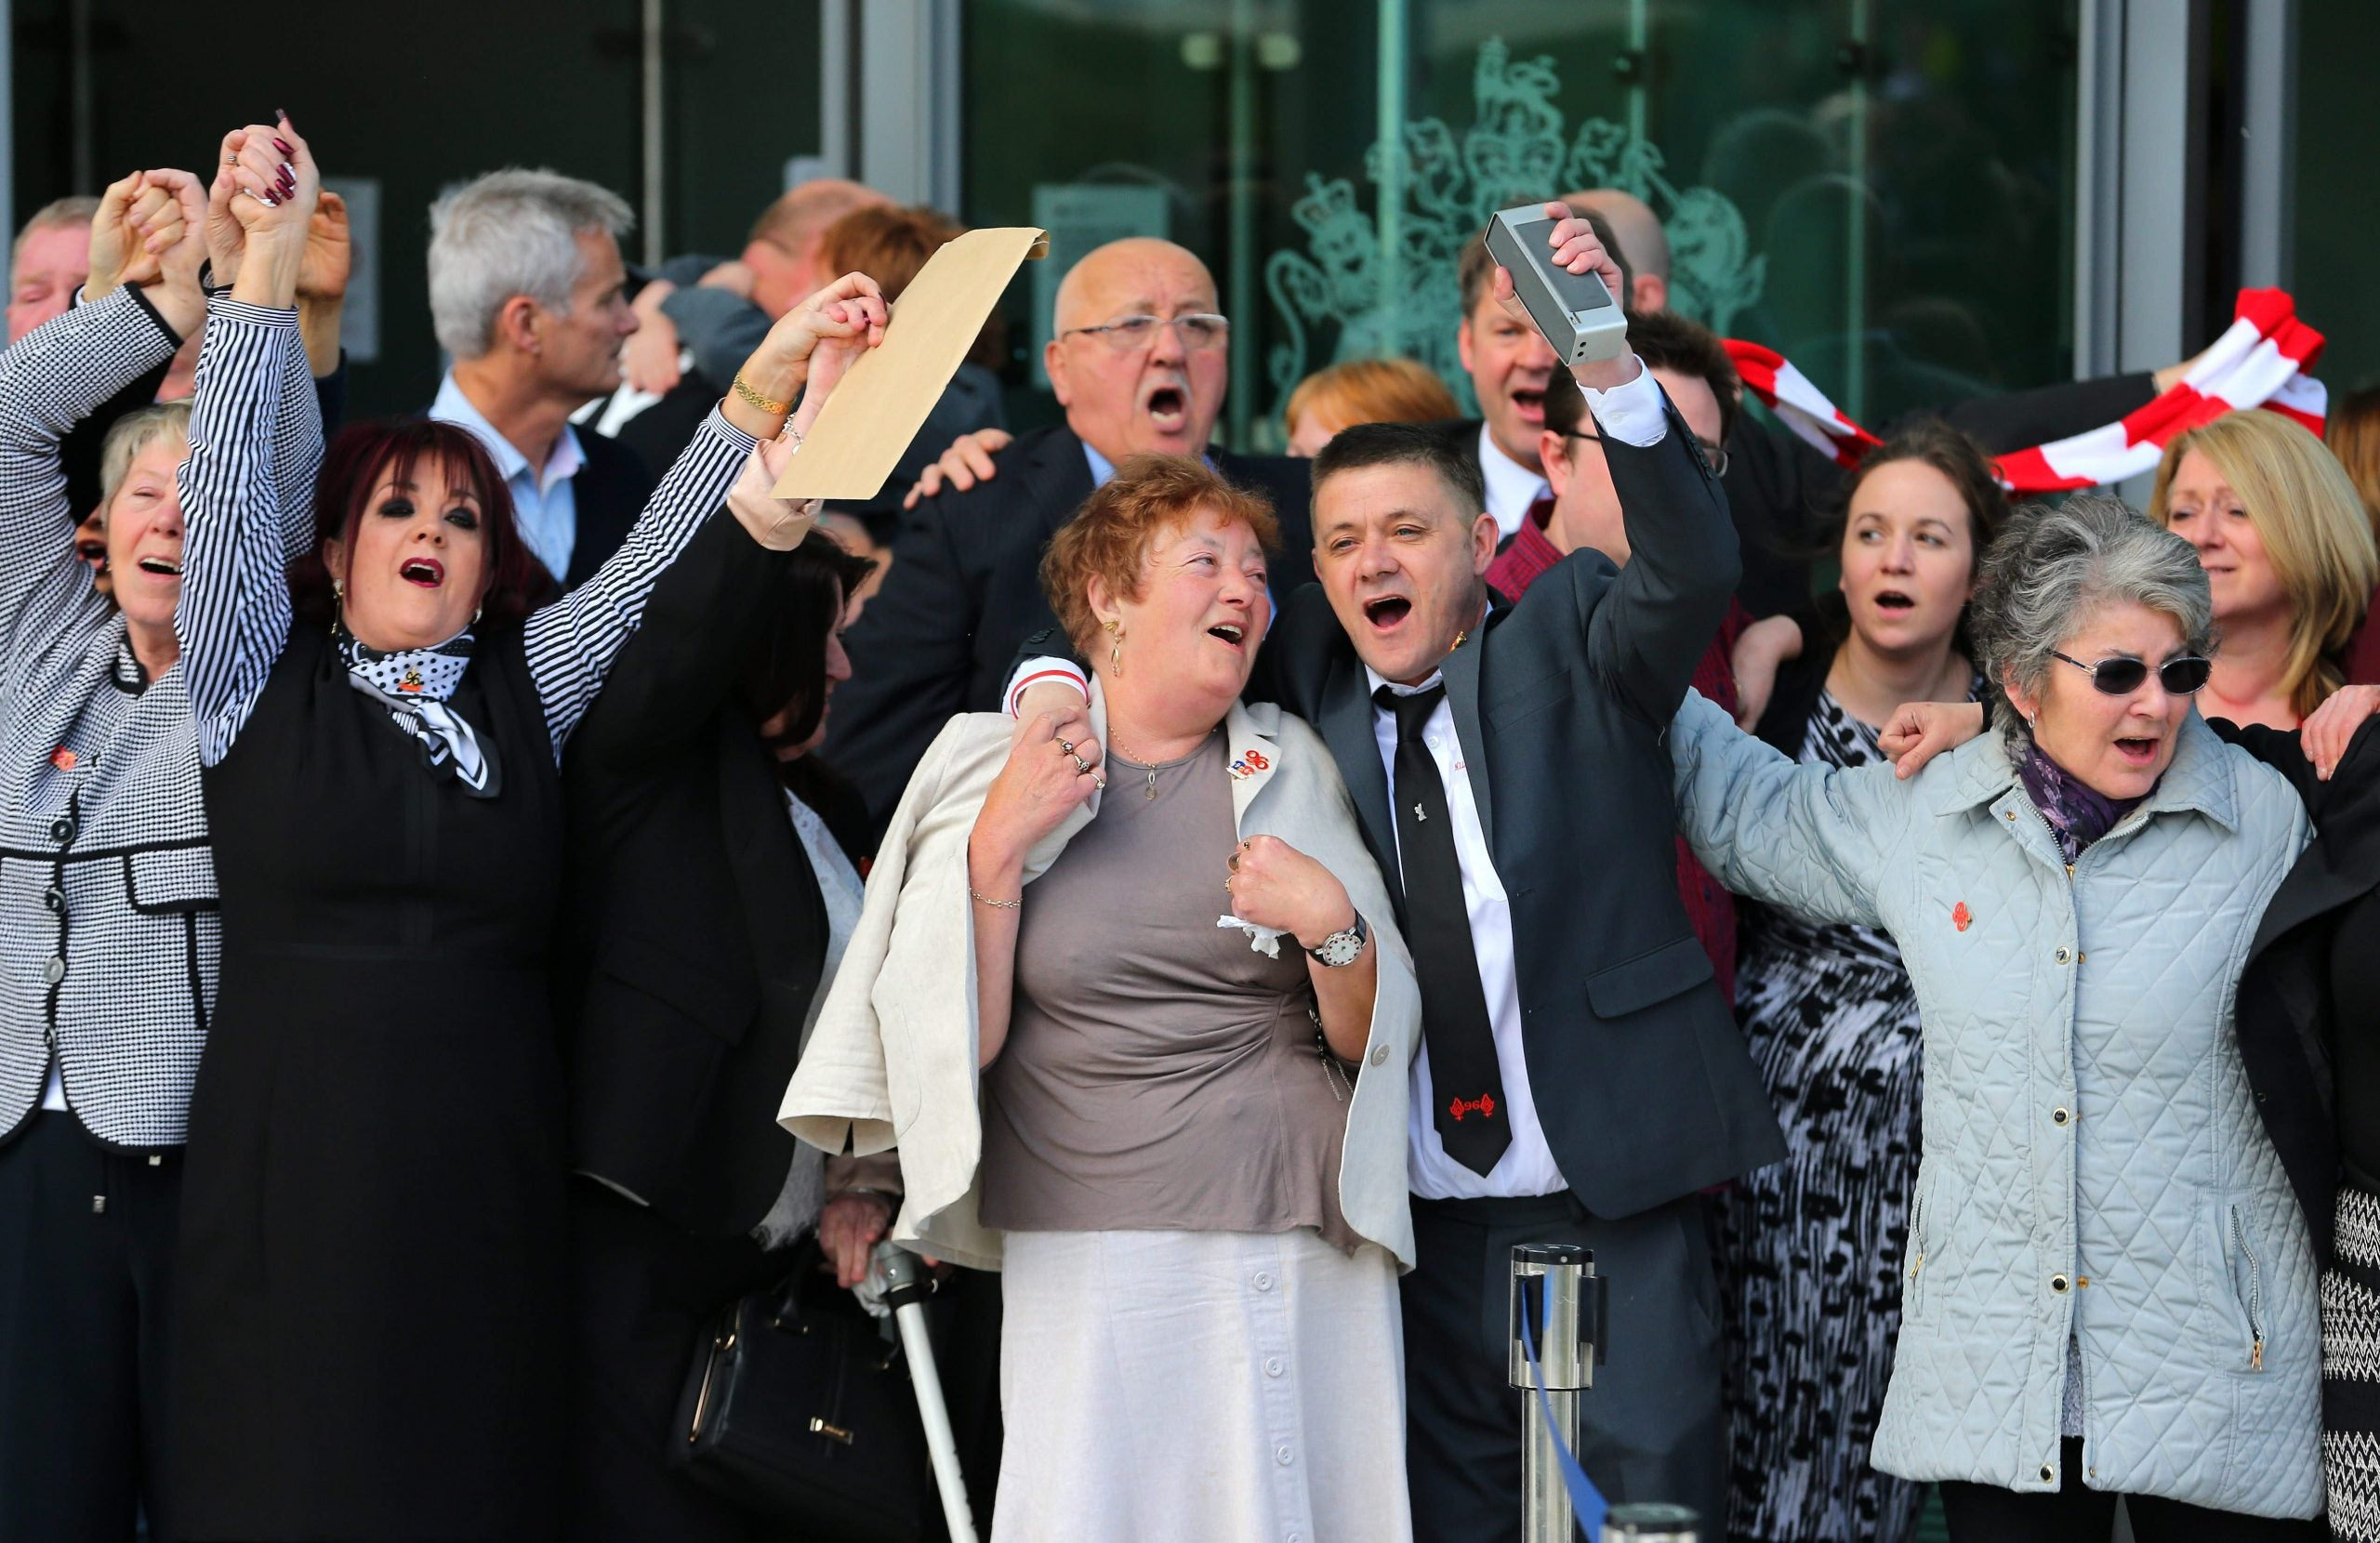 Hillsborough inquest finds 96 fans were unlawfully killed in 1989 disaster